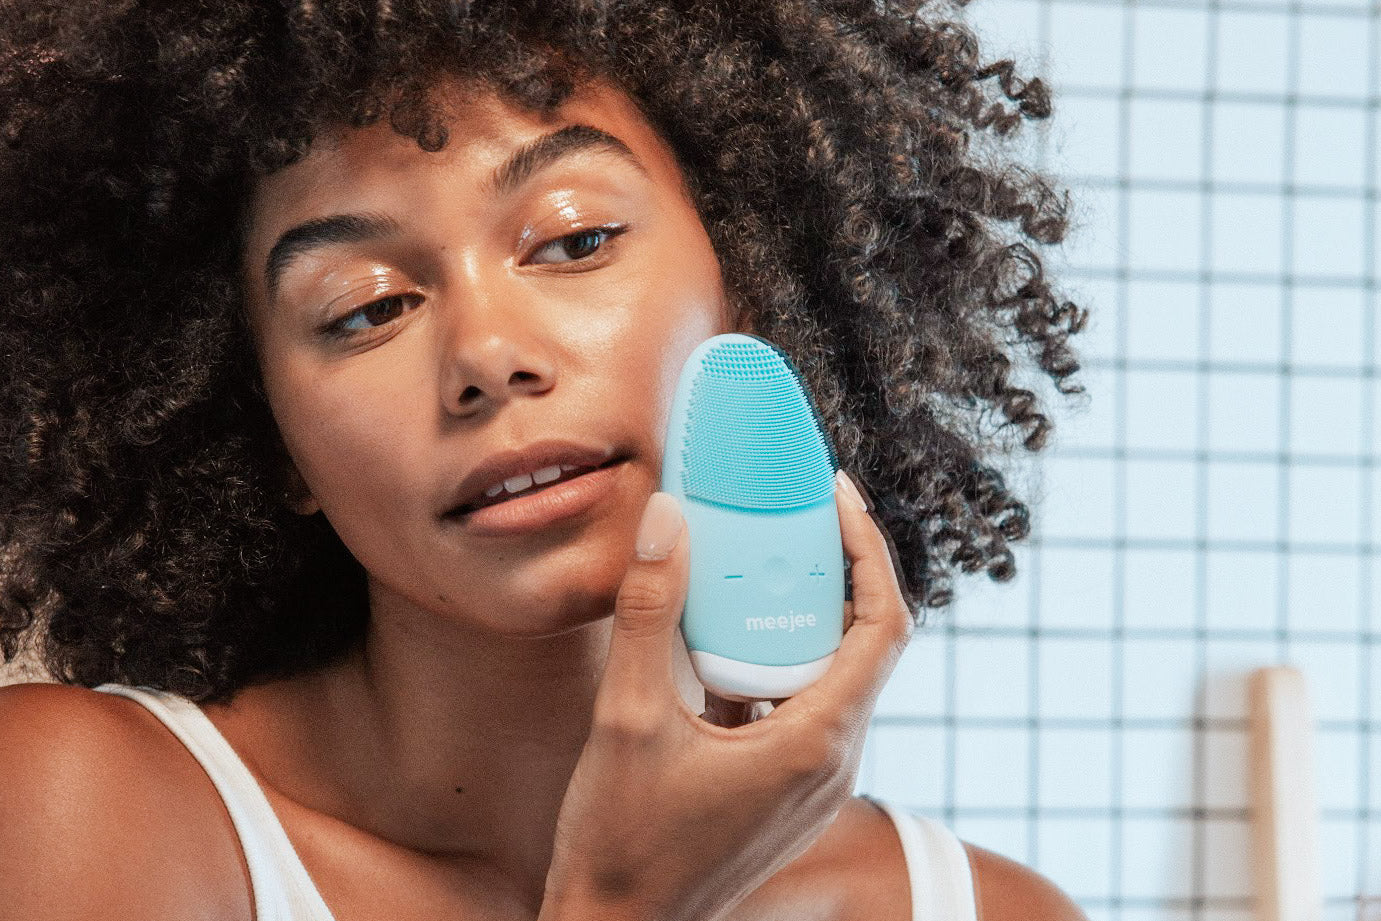 meejee silicone facial cleanser machine to clean face